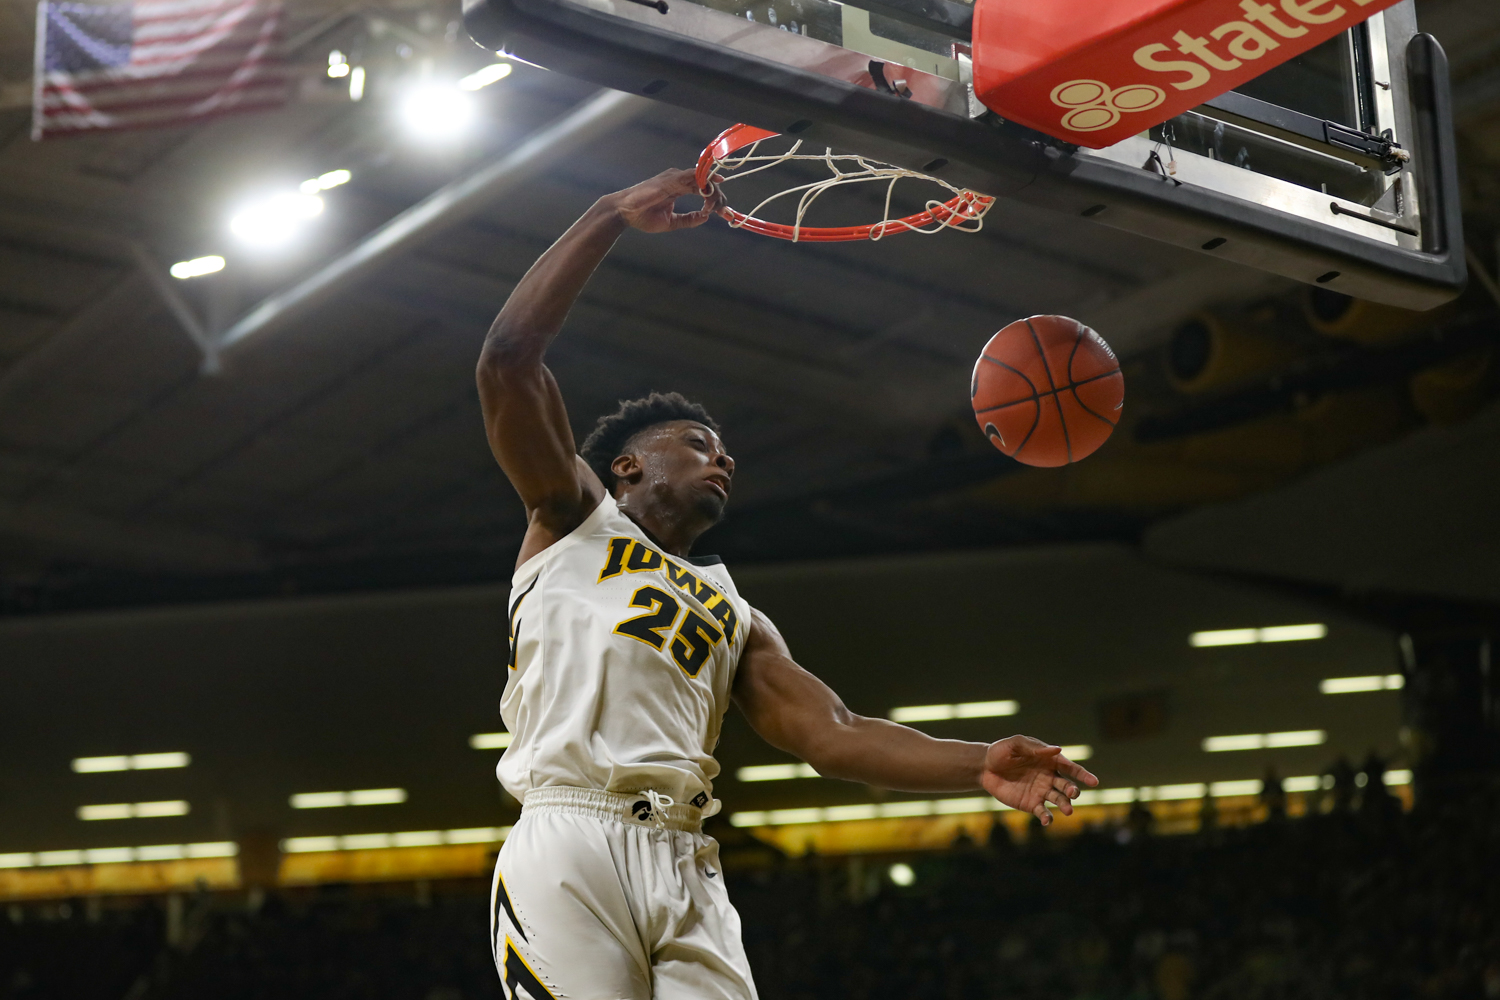 Iowa forward Tyler Cook (25) goes for a dunk during a basketball game against Maryland at Carver-Hawkeye Arena on Tuesday, Feb. 19, 2019. The Terrapins defeated the Hawkeyes 66-65.